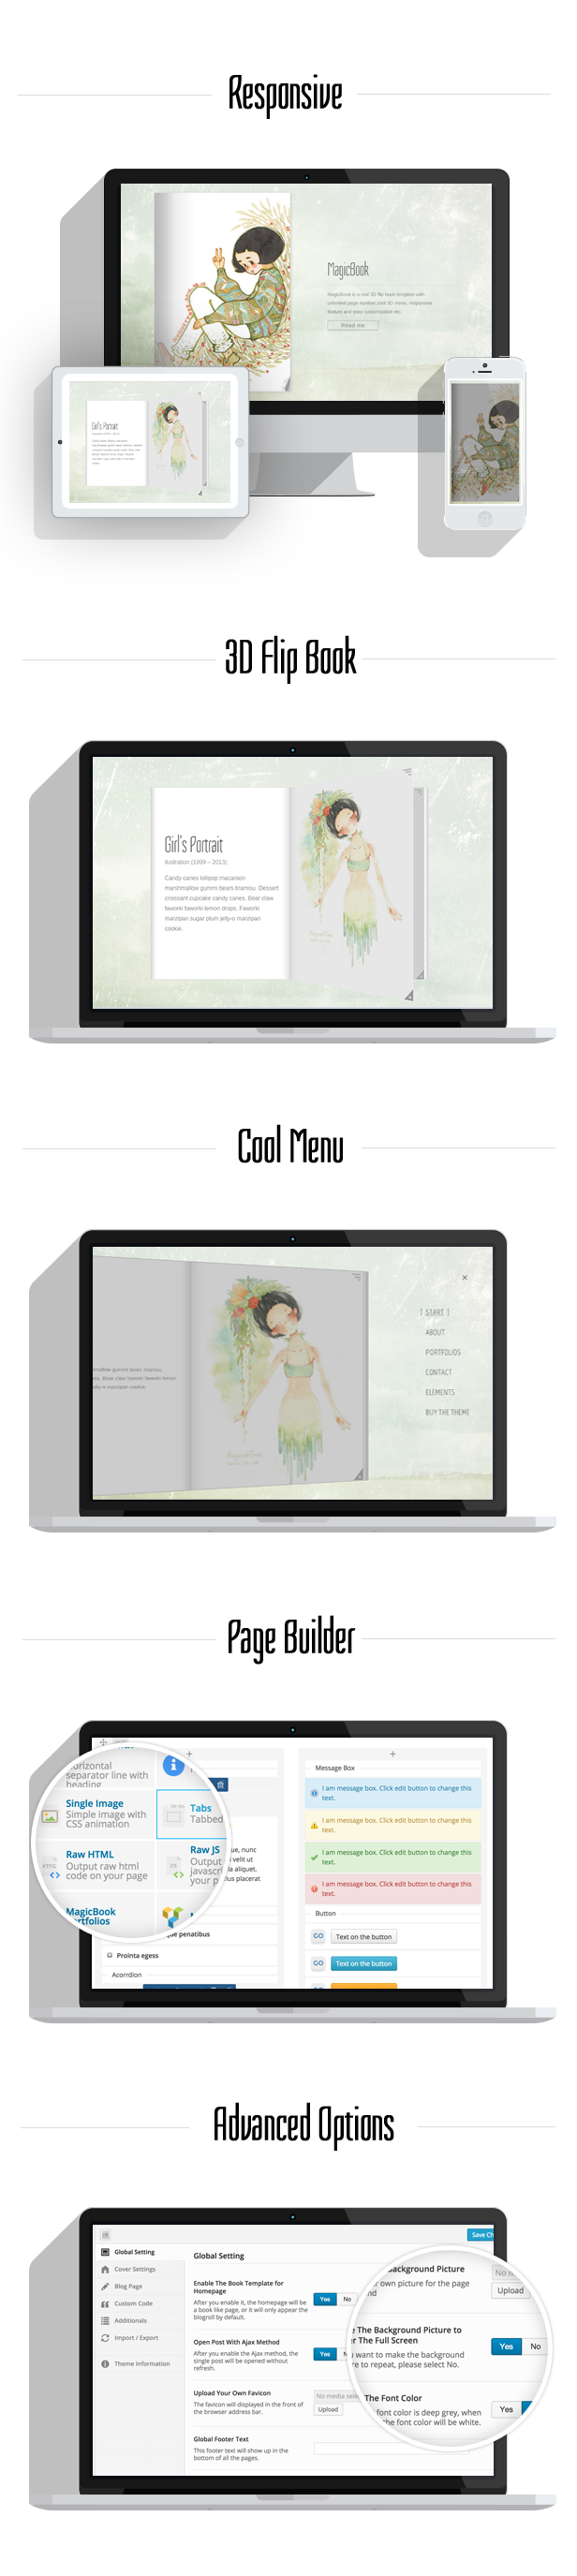 MagicBook - A 3D Flip Book WordPress Theme V1.2.5